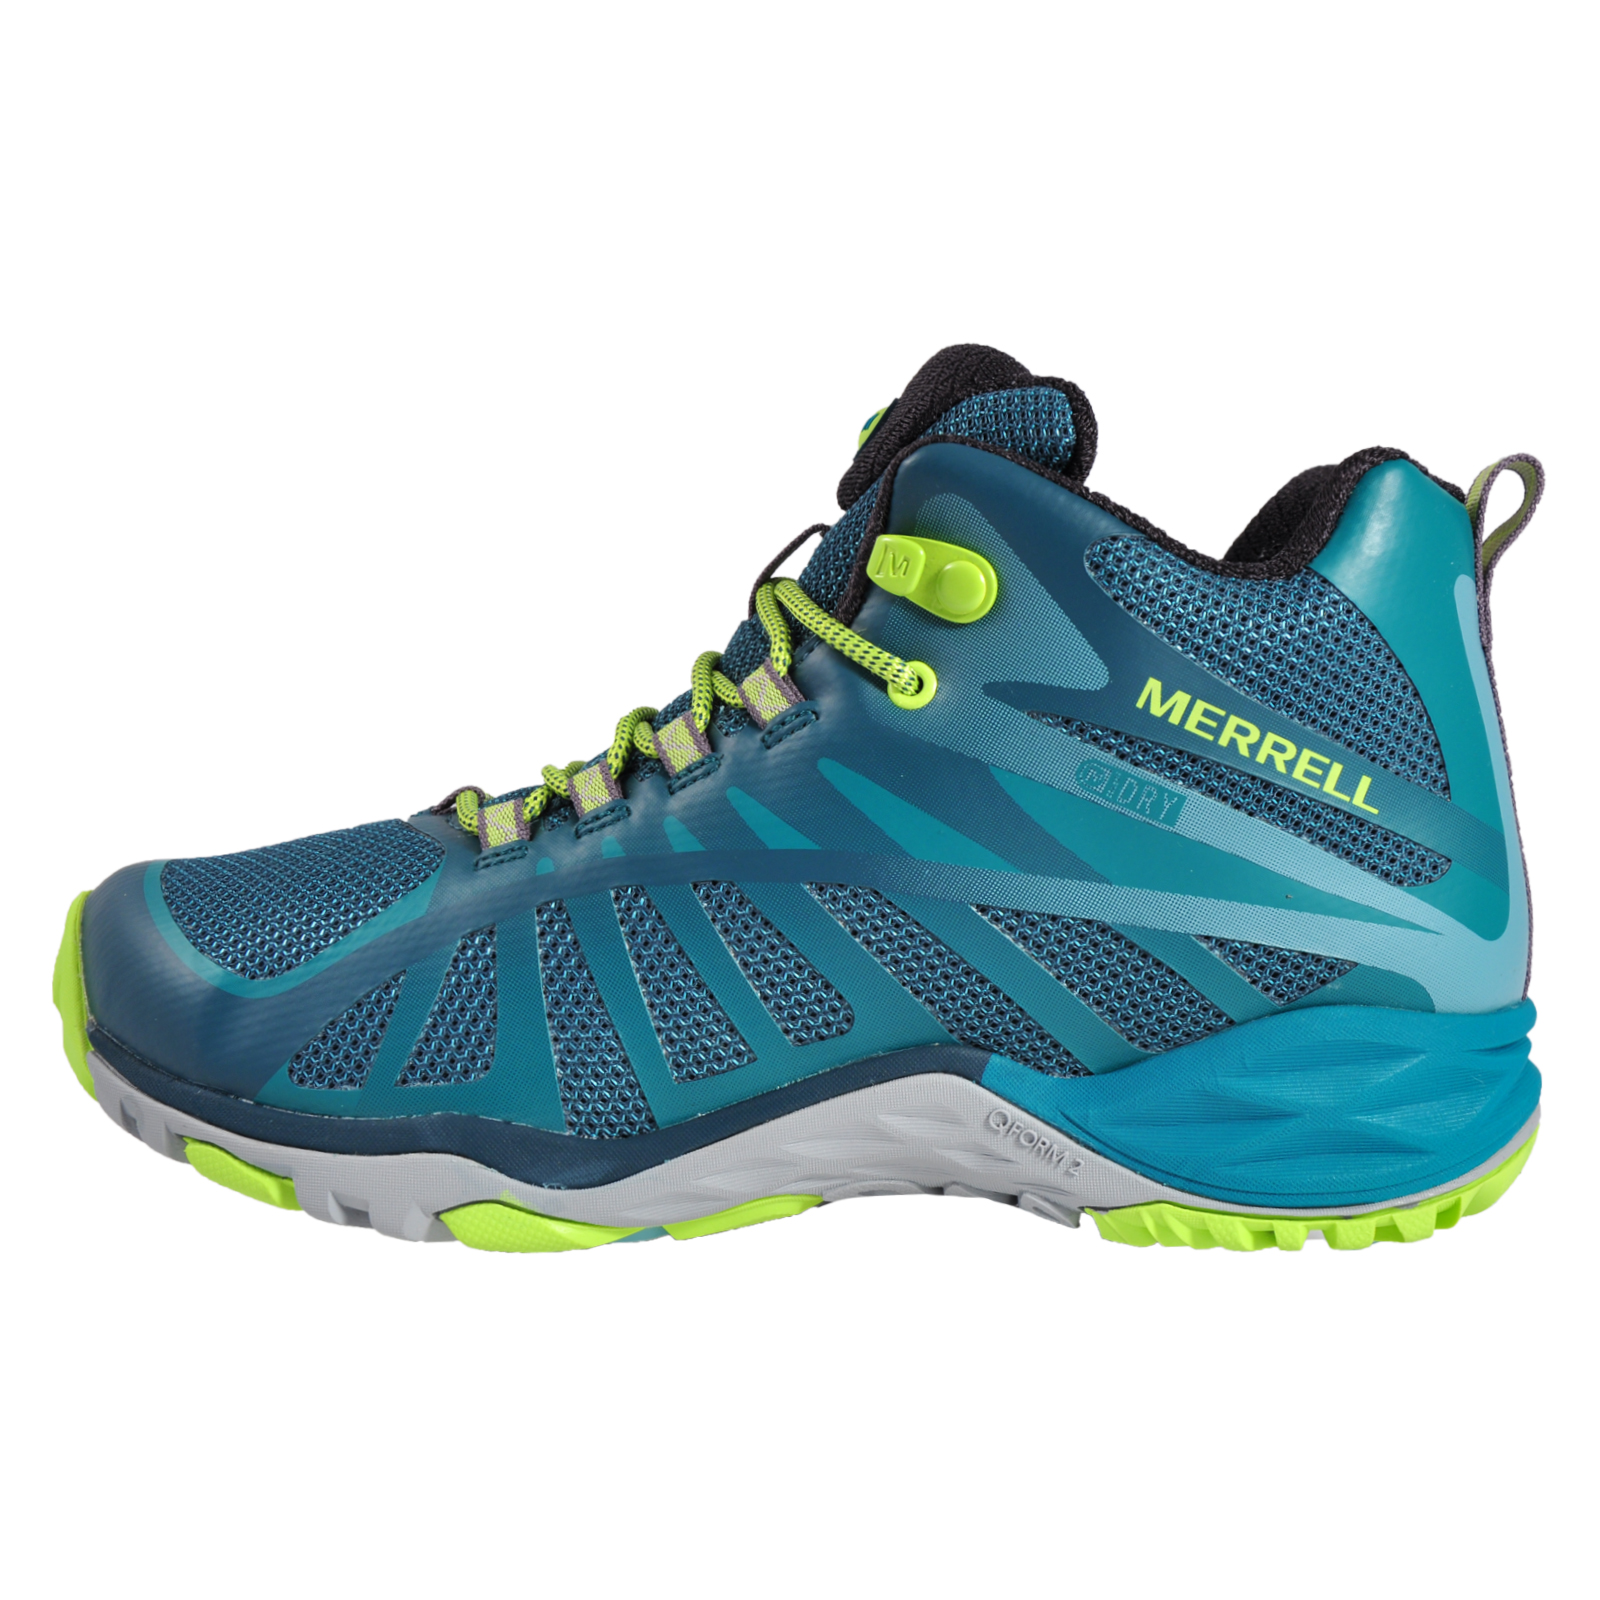 MERRELL SIREN EDGE Q2 WOMENS LADIES SUPPORT WALKING HIKING SHOES TRAINERS UK 4 8